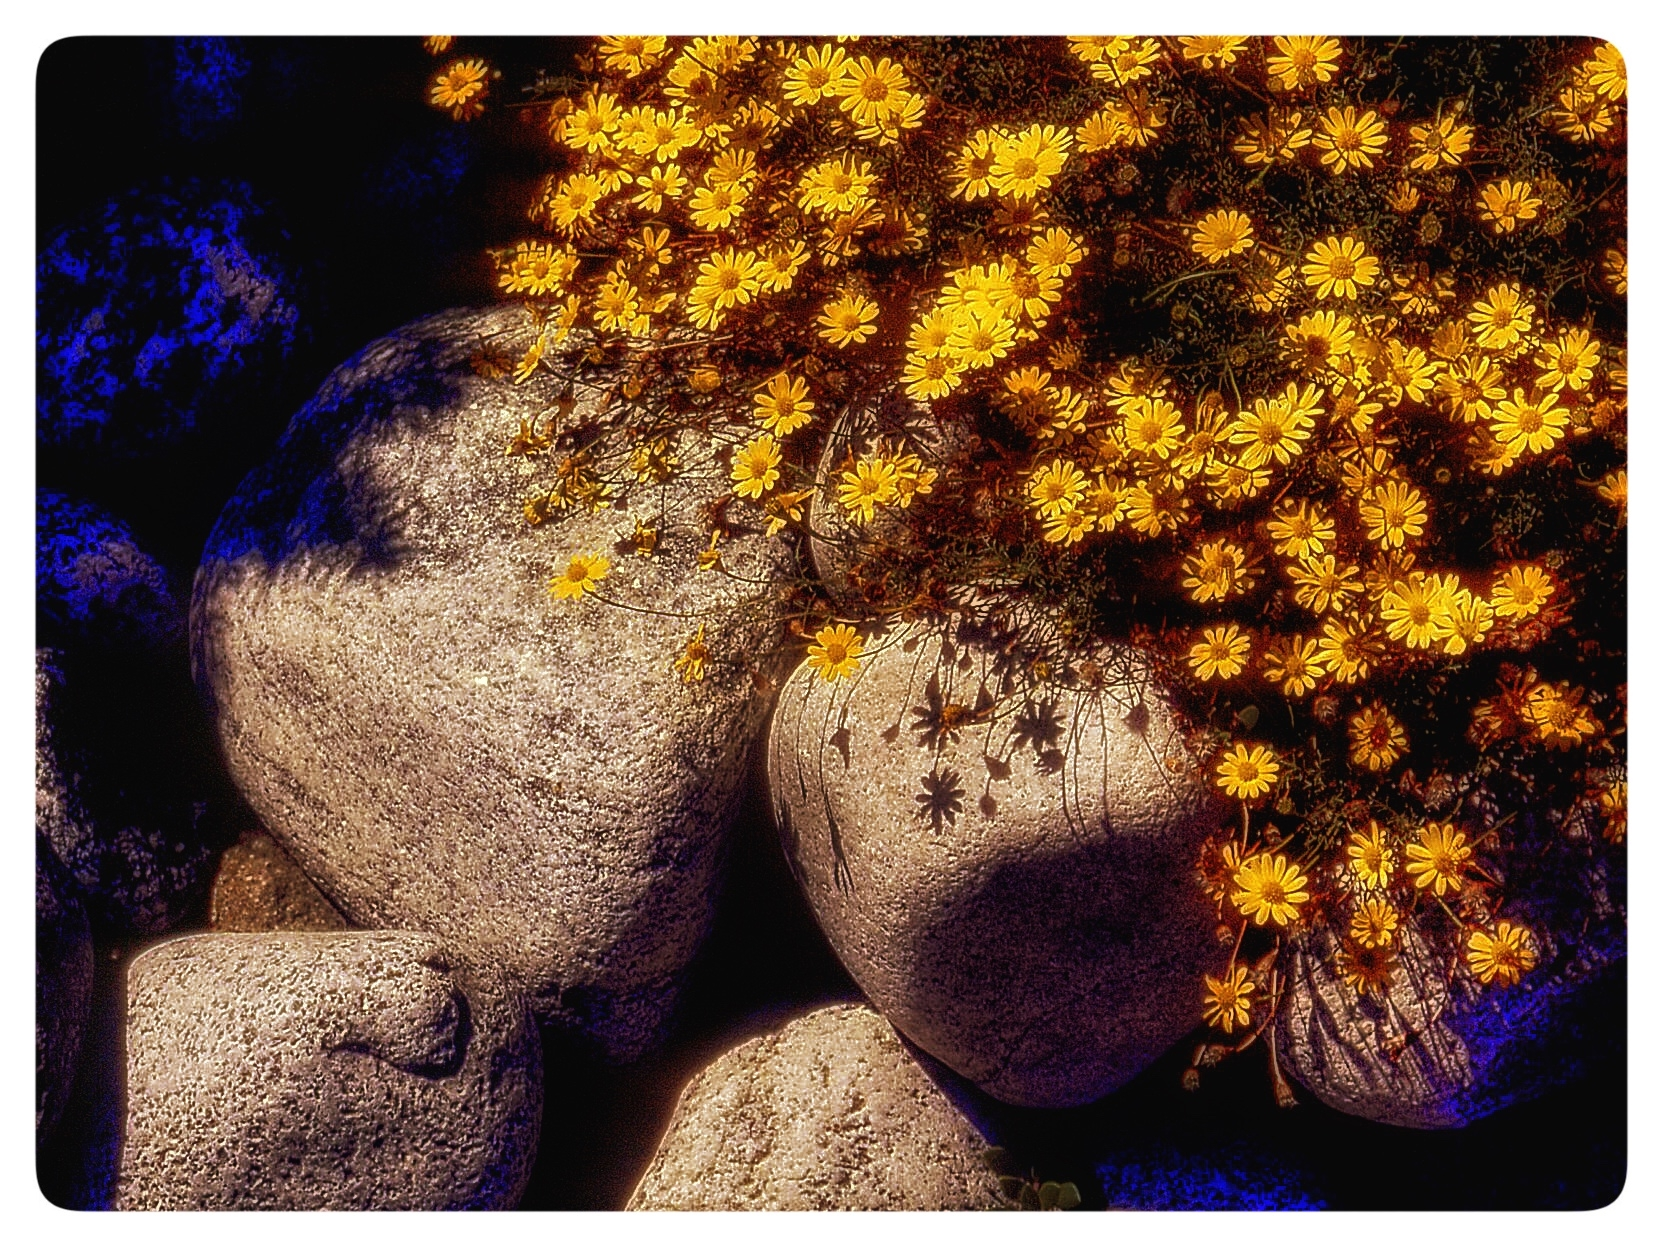 Rock Garden with Pansies